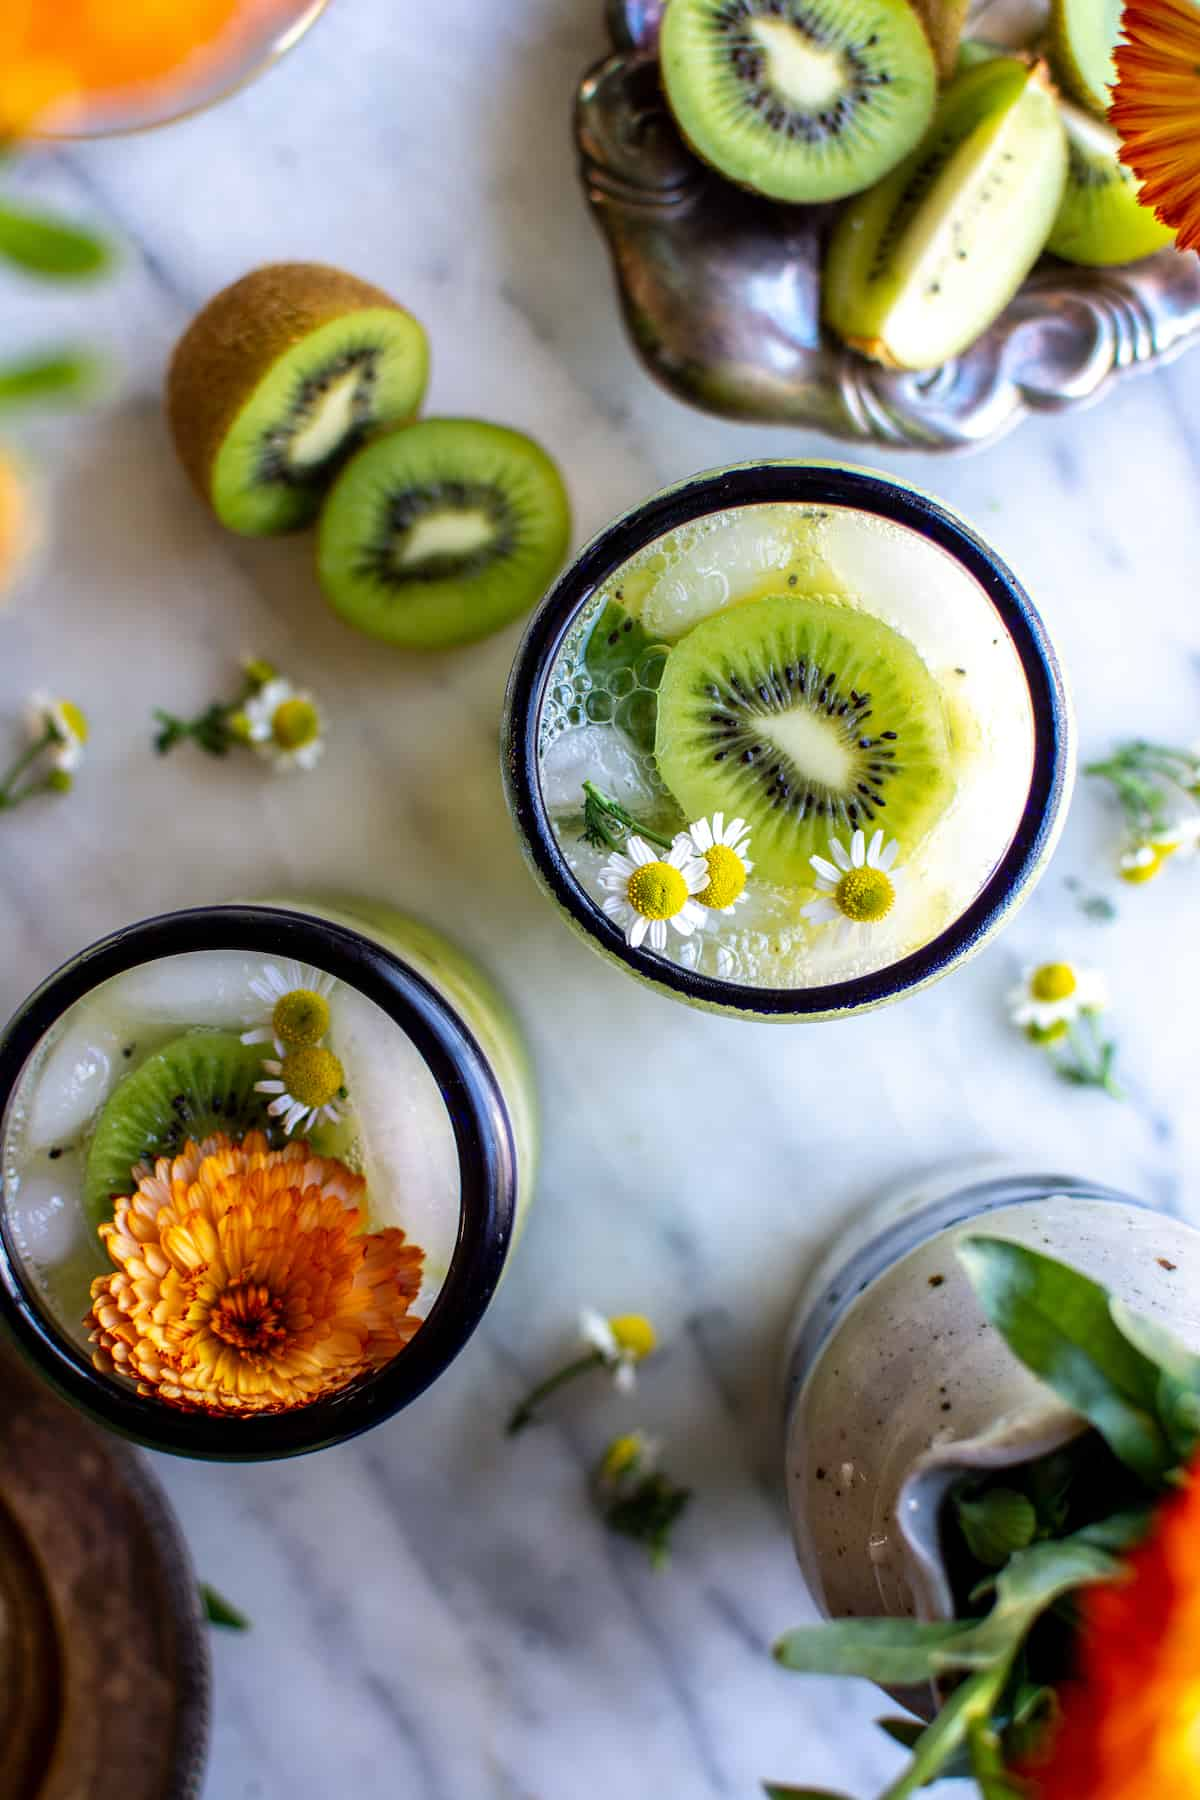 This Kiwi Caipirinha Cocktail is made with ripe, juicy California kiwifruit and limes, honey and cachaça—Brazil's most popular sugarcane liquor. Delicious and refreshing- perfect for summer! #ad #cagrown #caipirinha #kiwi